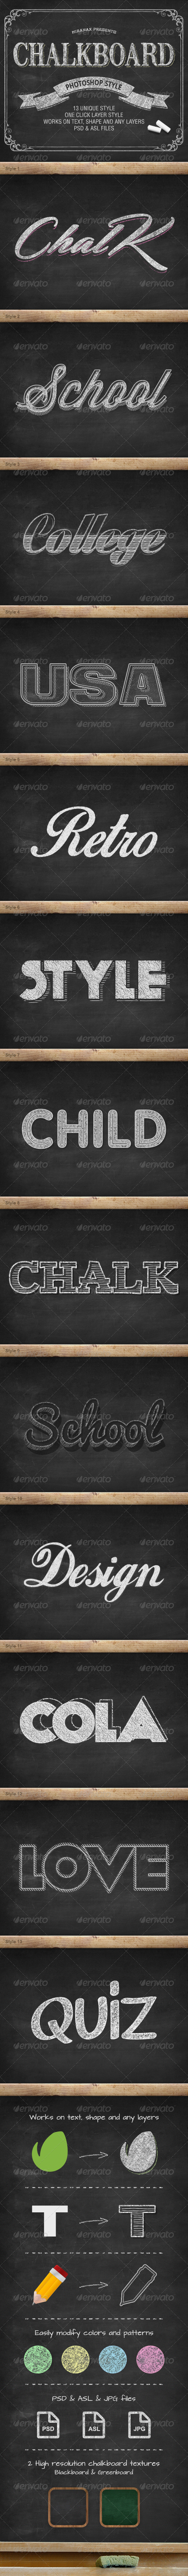 GraphicRiver Chalkboard Photoshop PSD Layer Styles 7631766